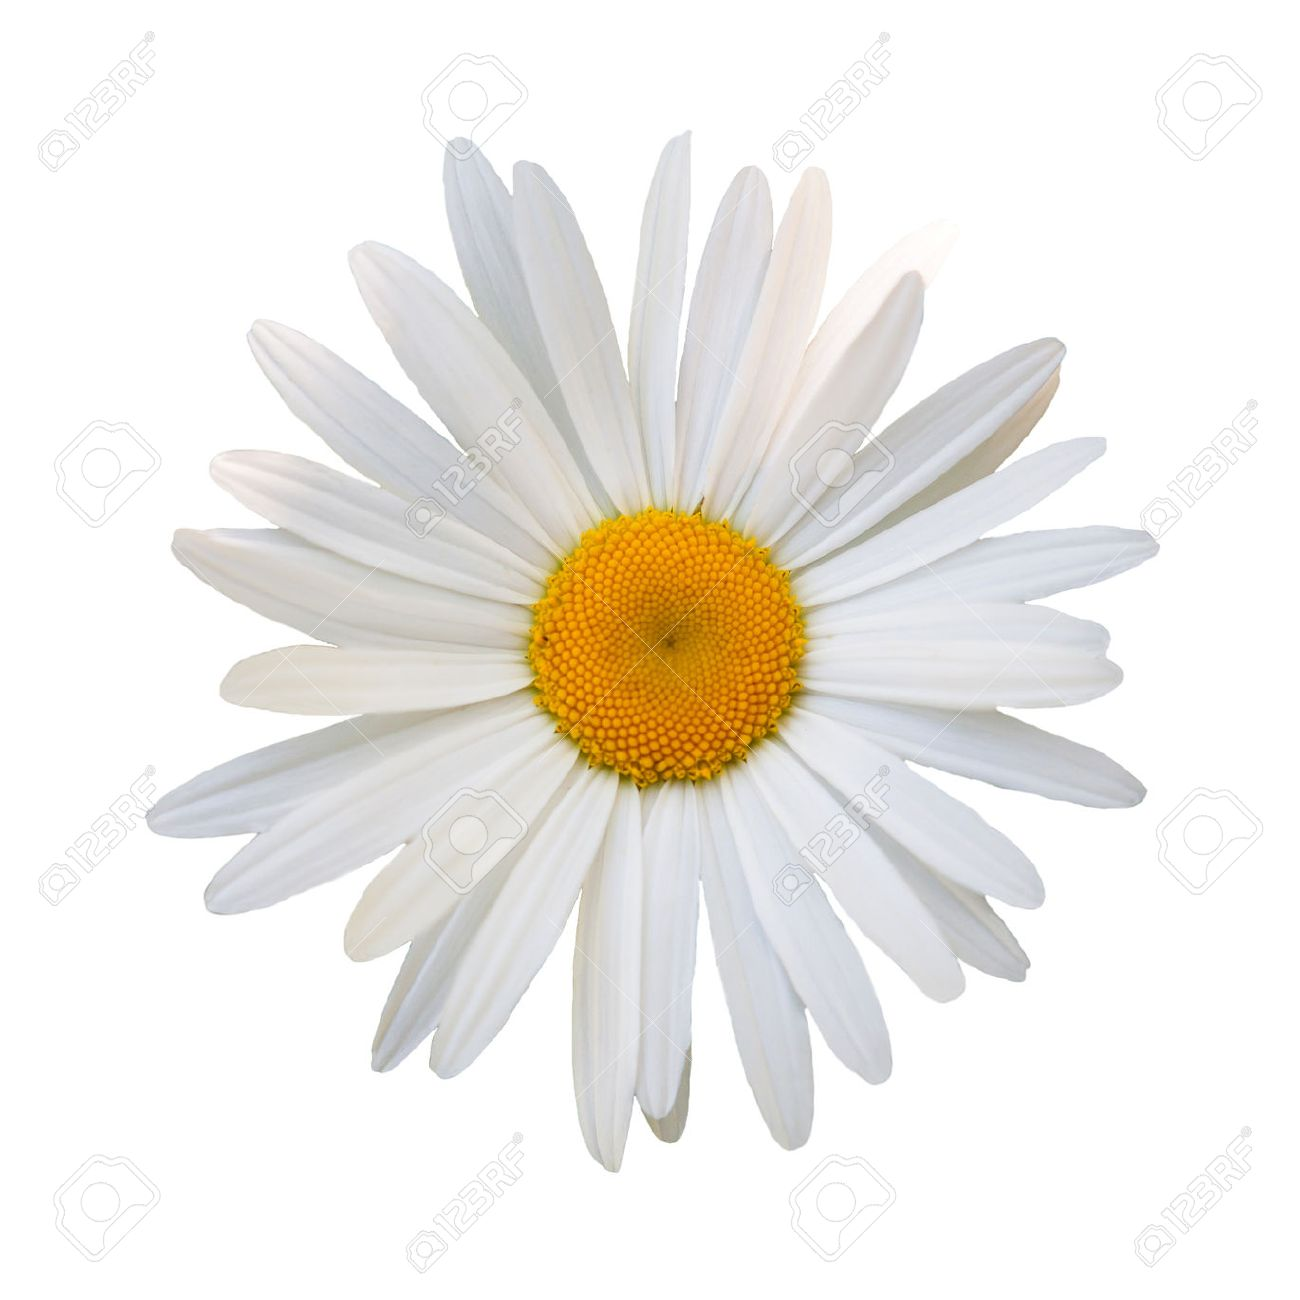 daisy images u0026 stock pictures royalty free daisy photos and stock